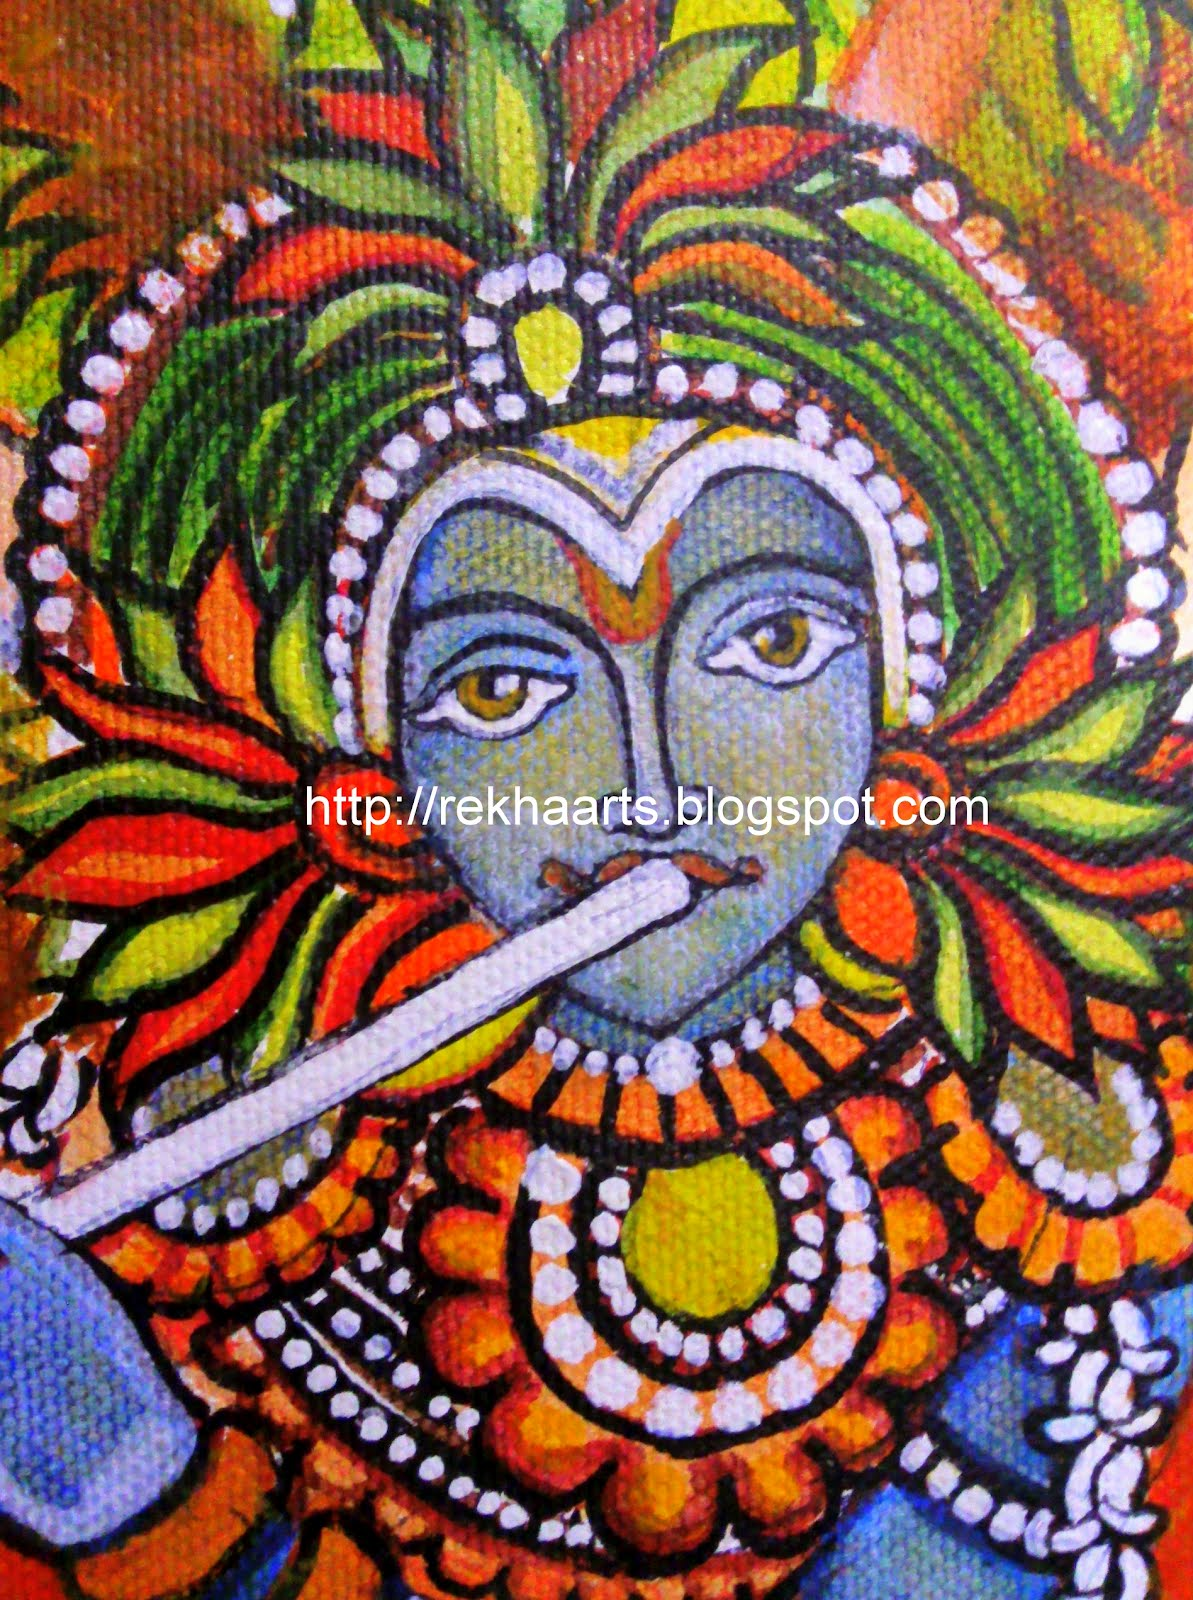 Arts and crafts kerala mural krishna for Arts and crafts mural